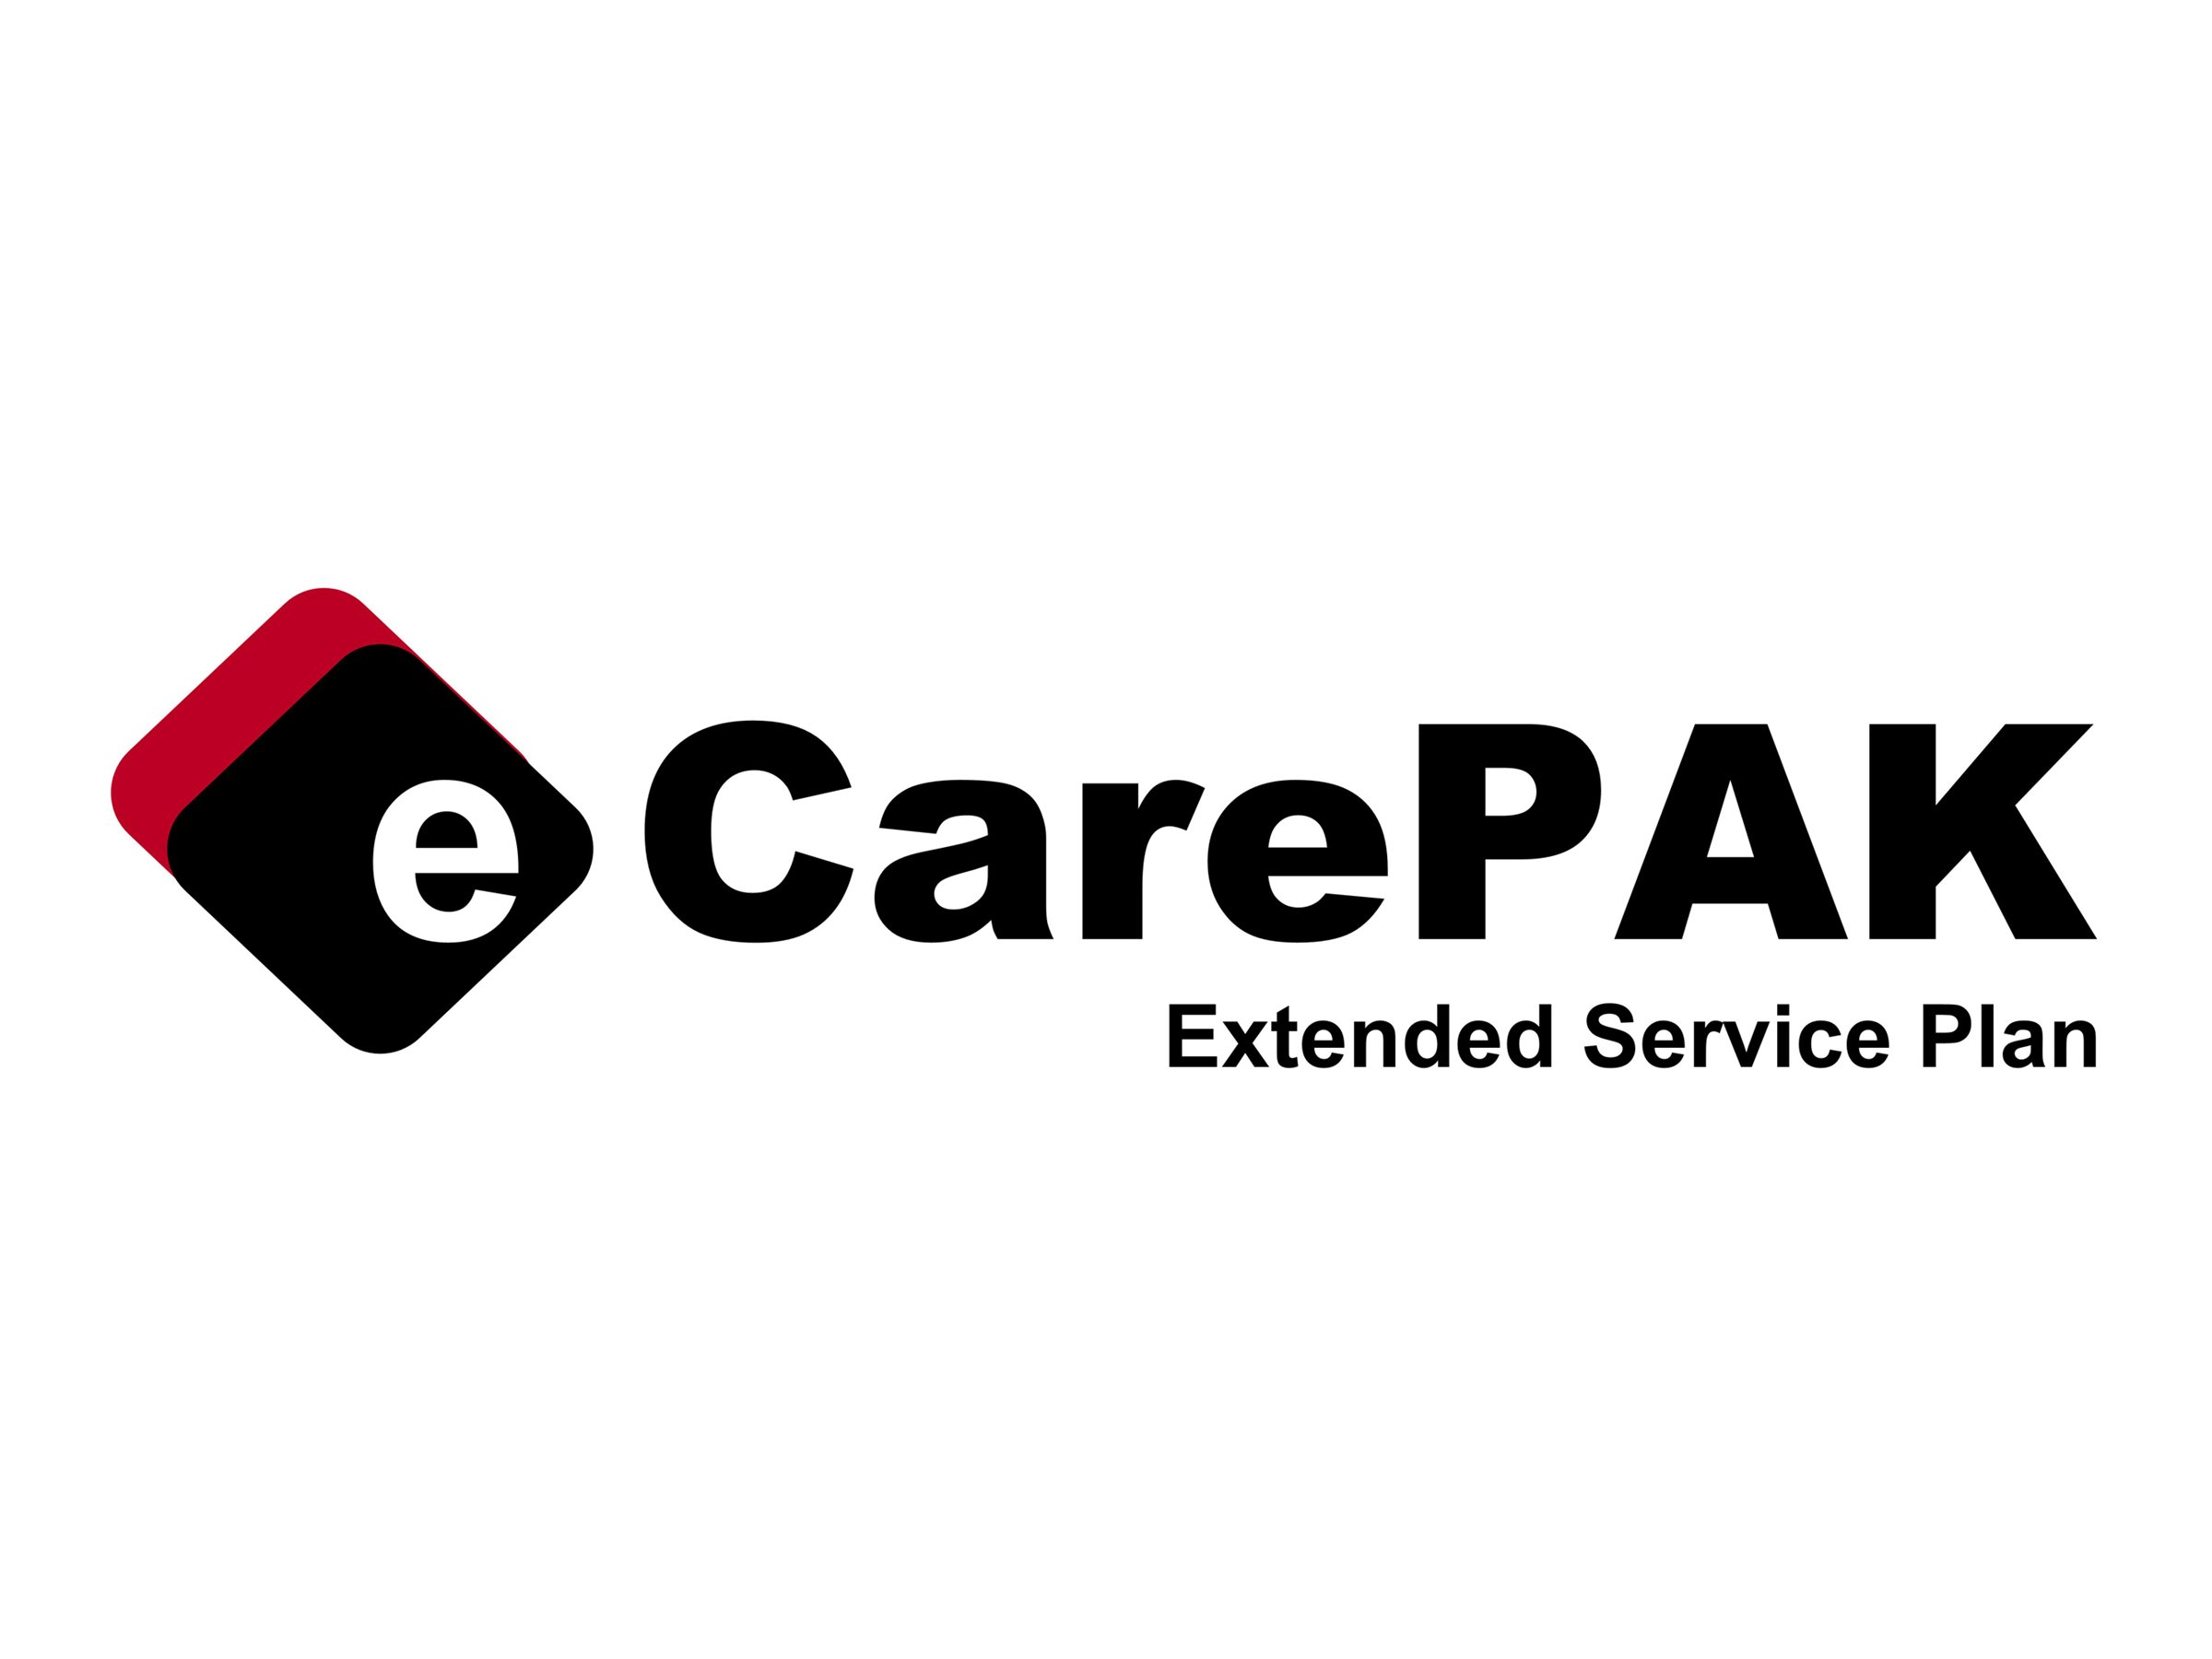 Canon eCarePAK Extended Service Plan Installation Service Plan - installation - on-site